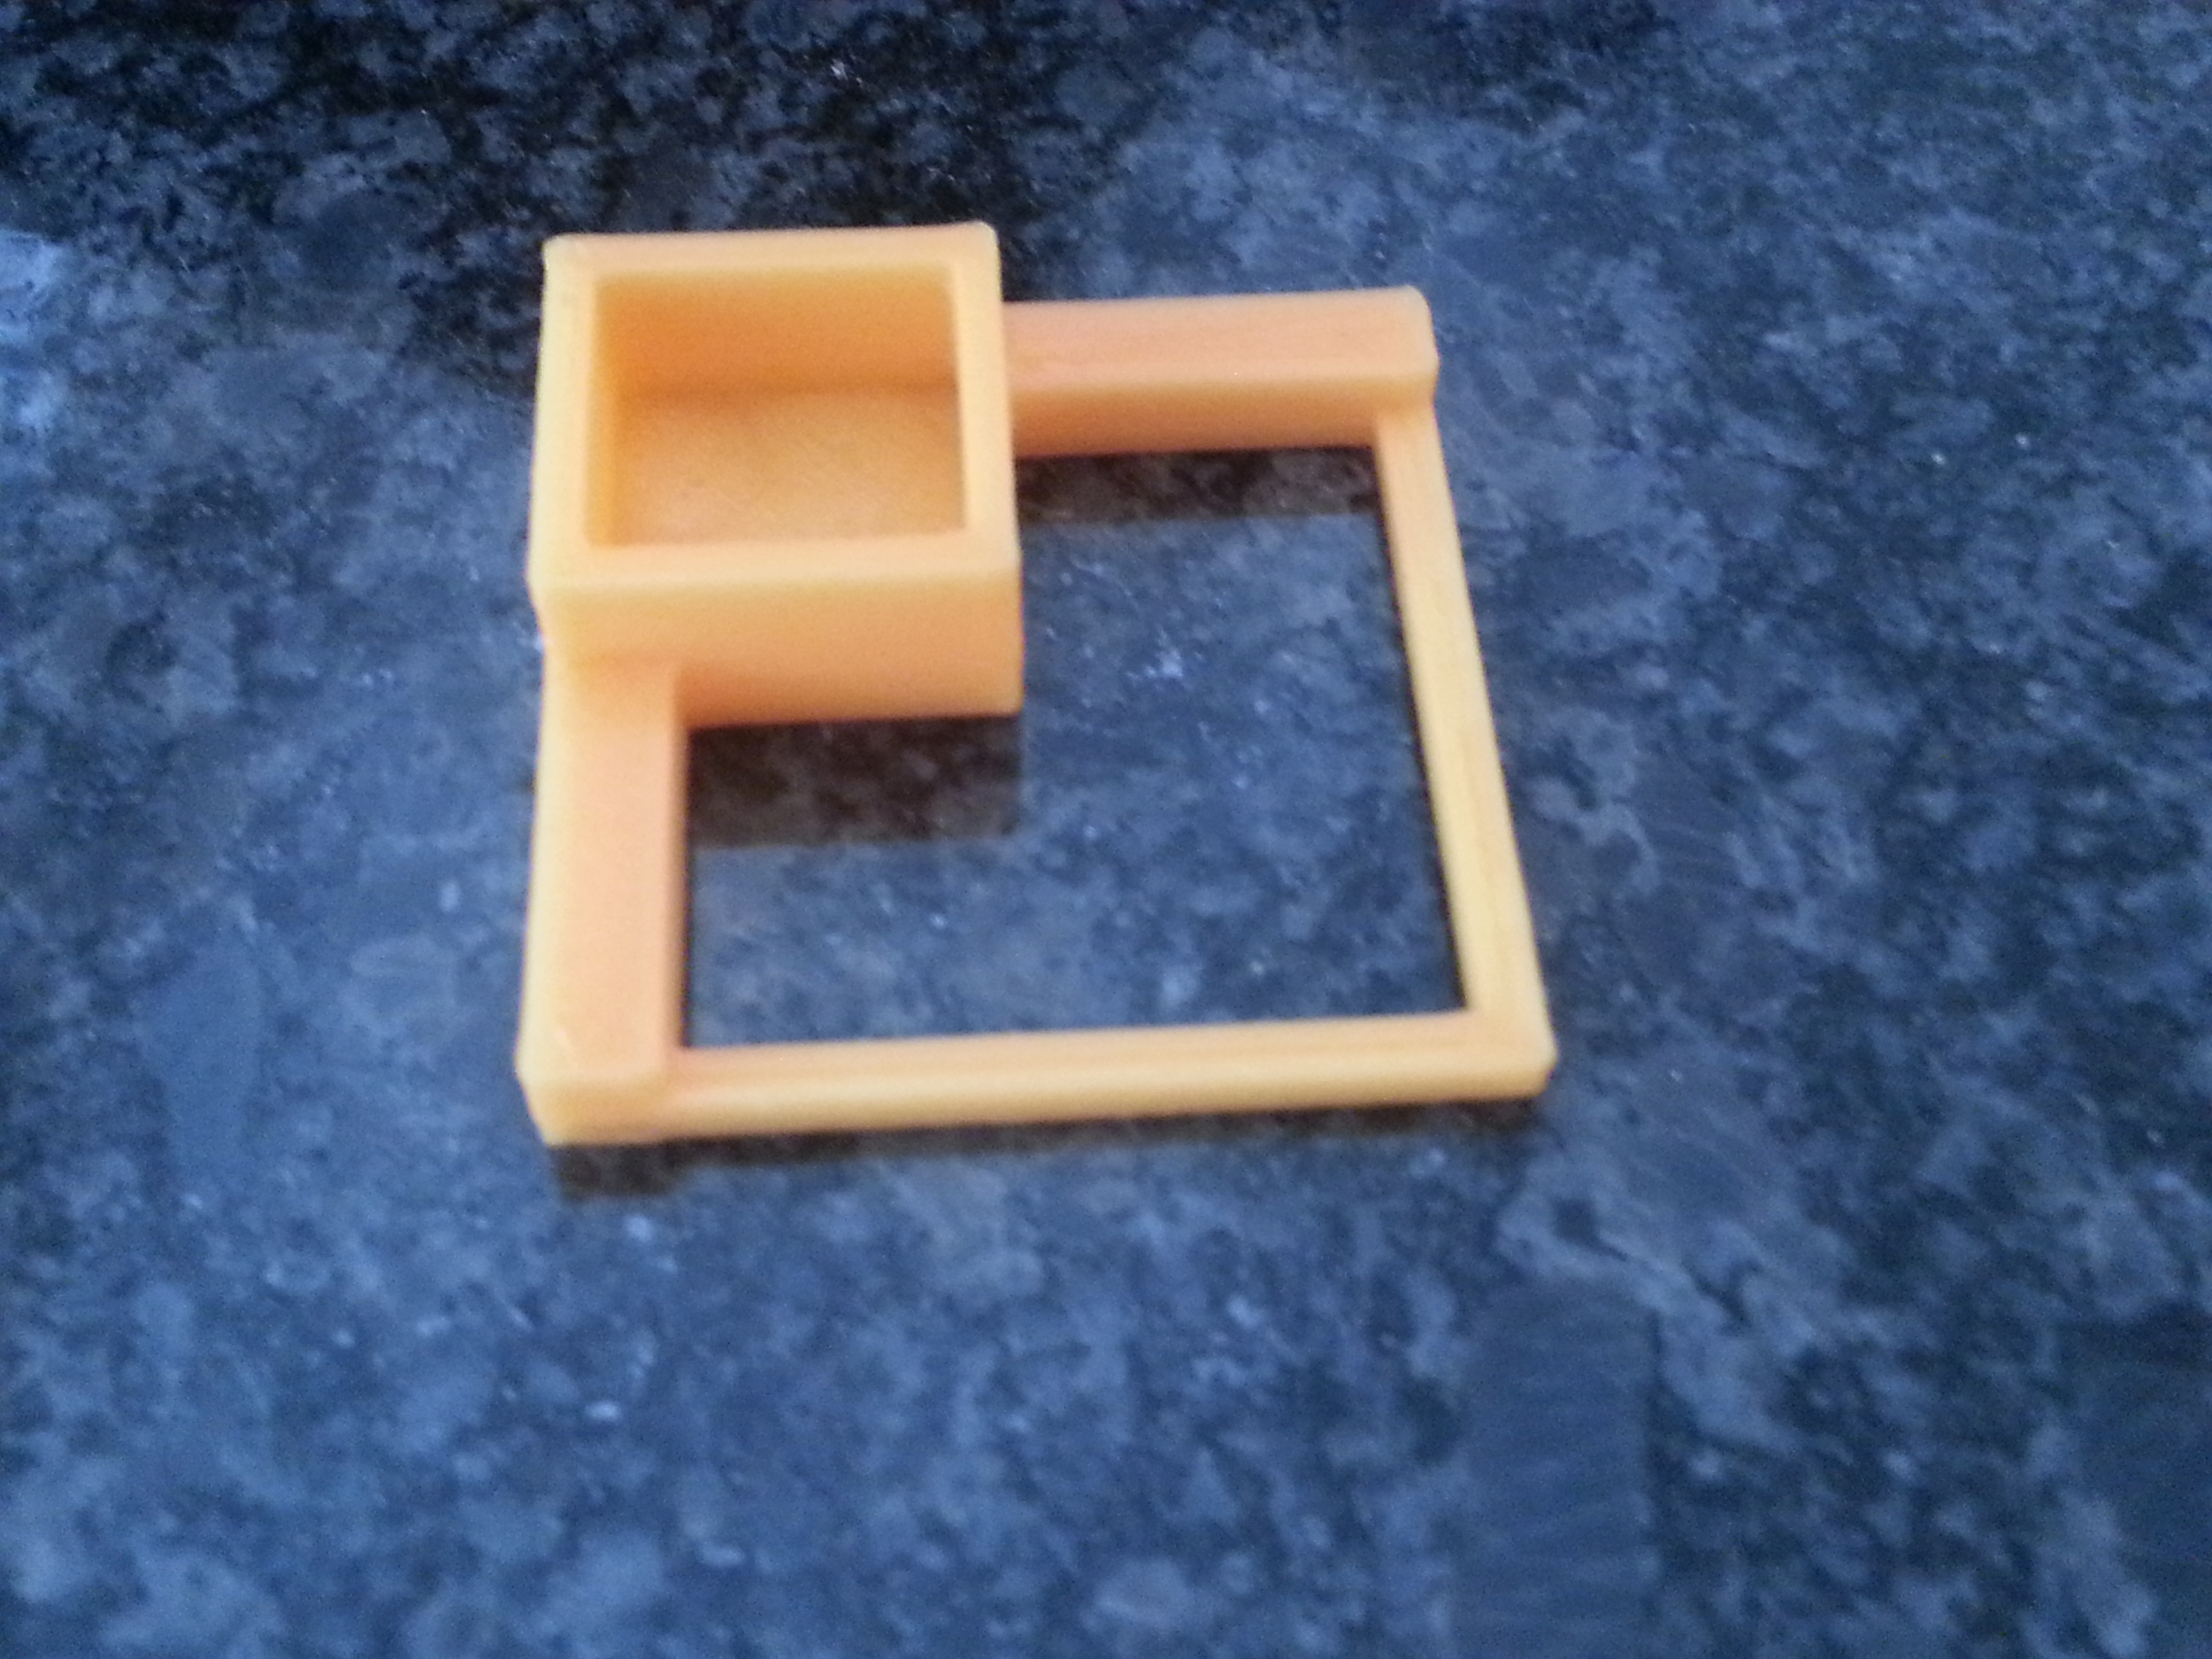 Another Calibration Square   Printrbot Simple - 0.25mm layers - Orange PLA